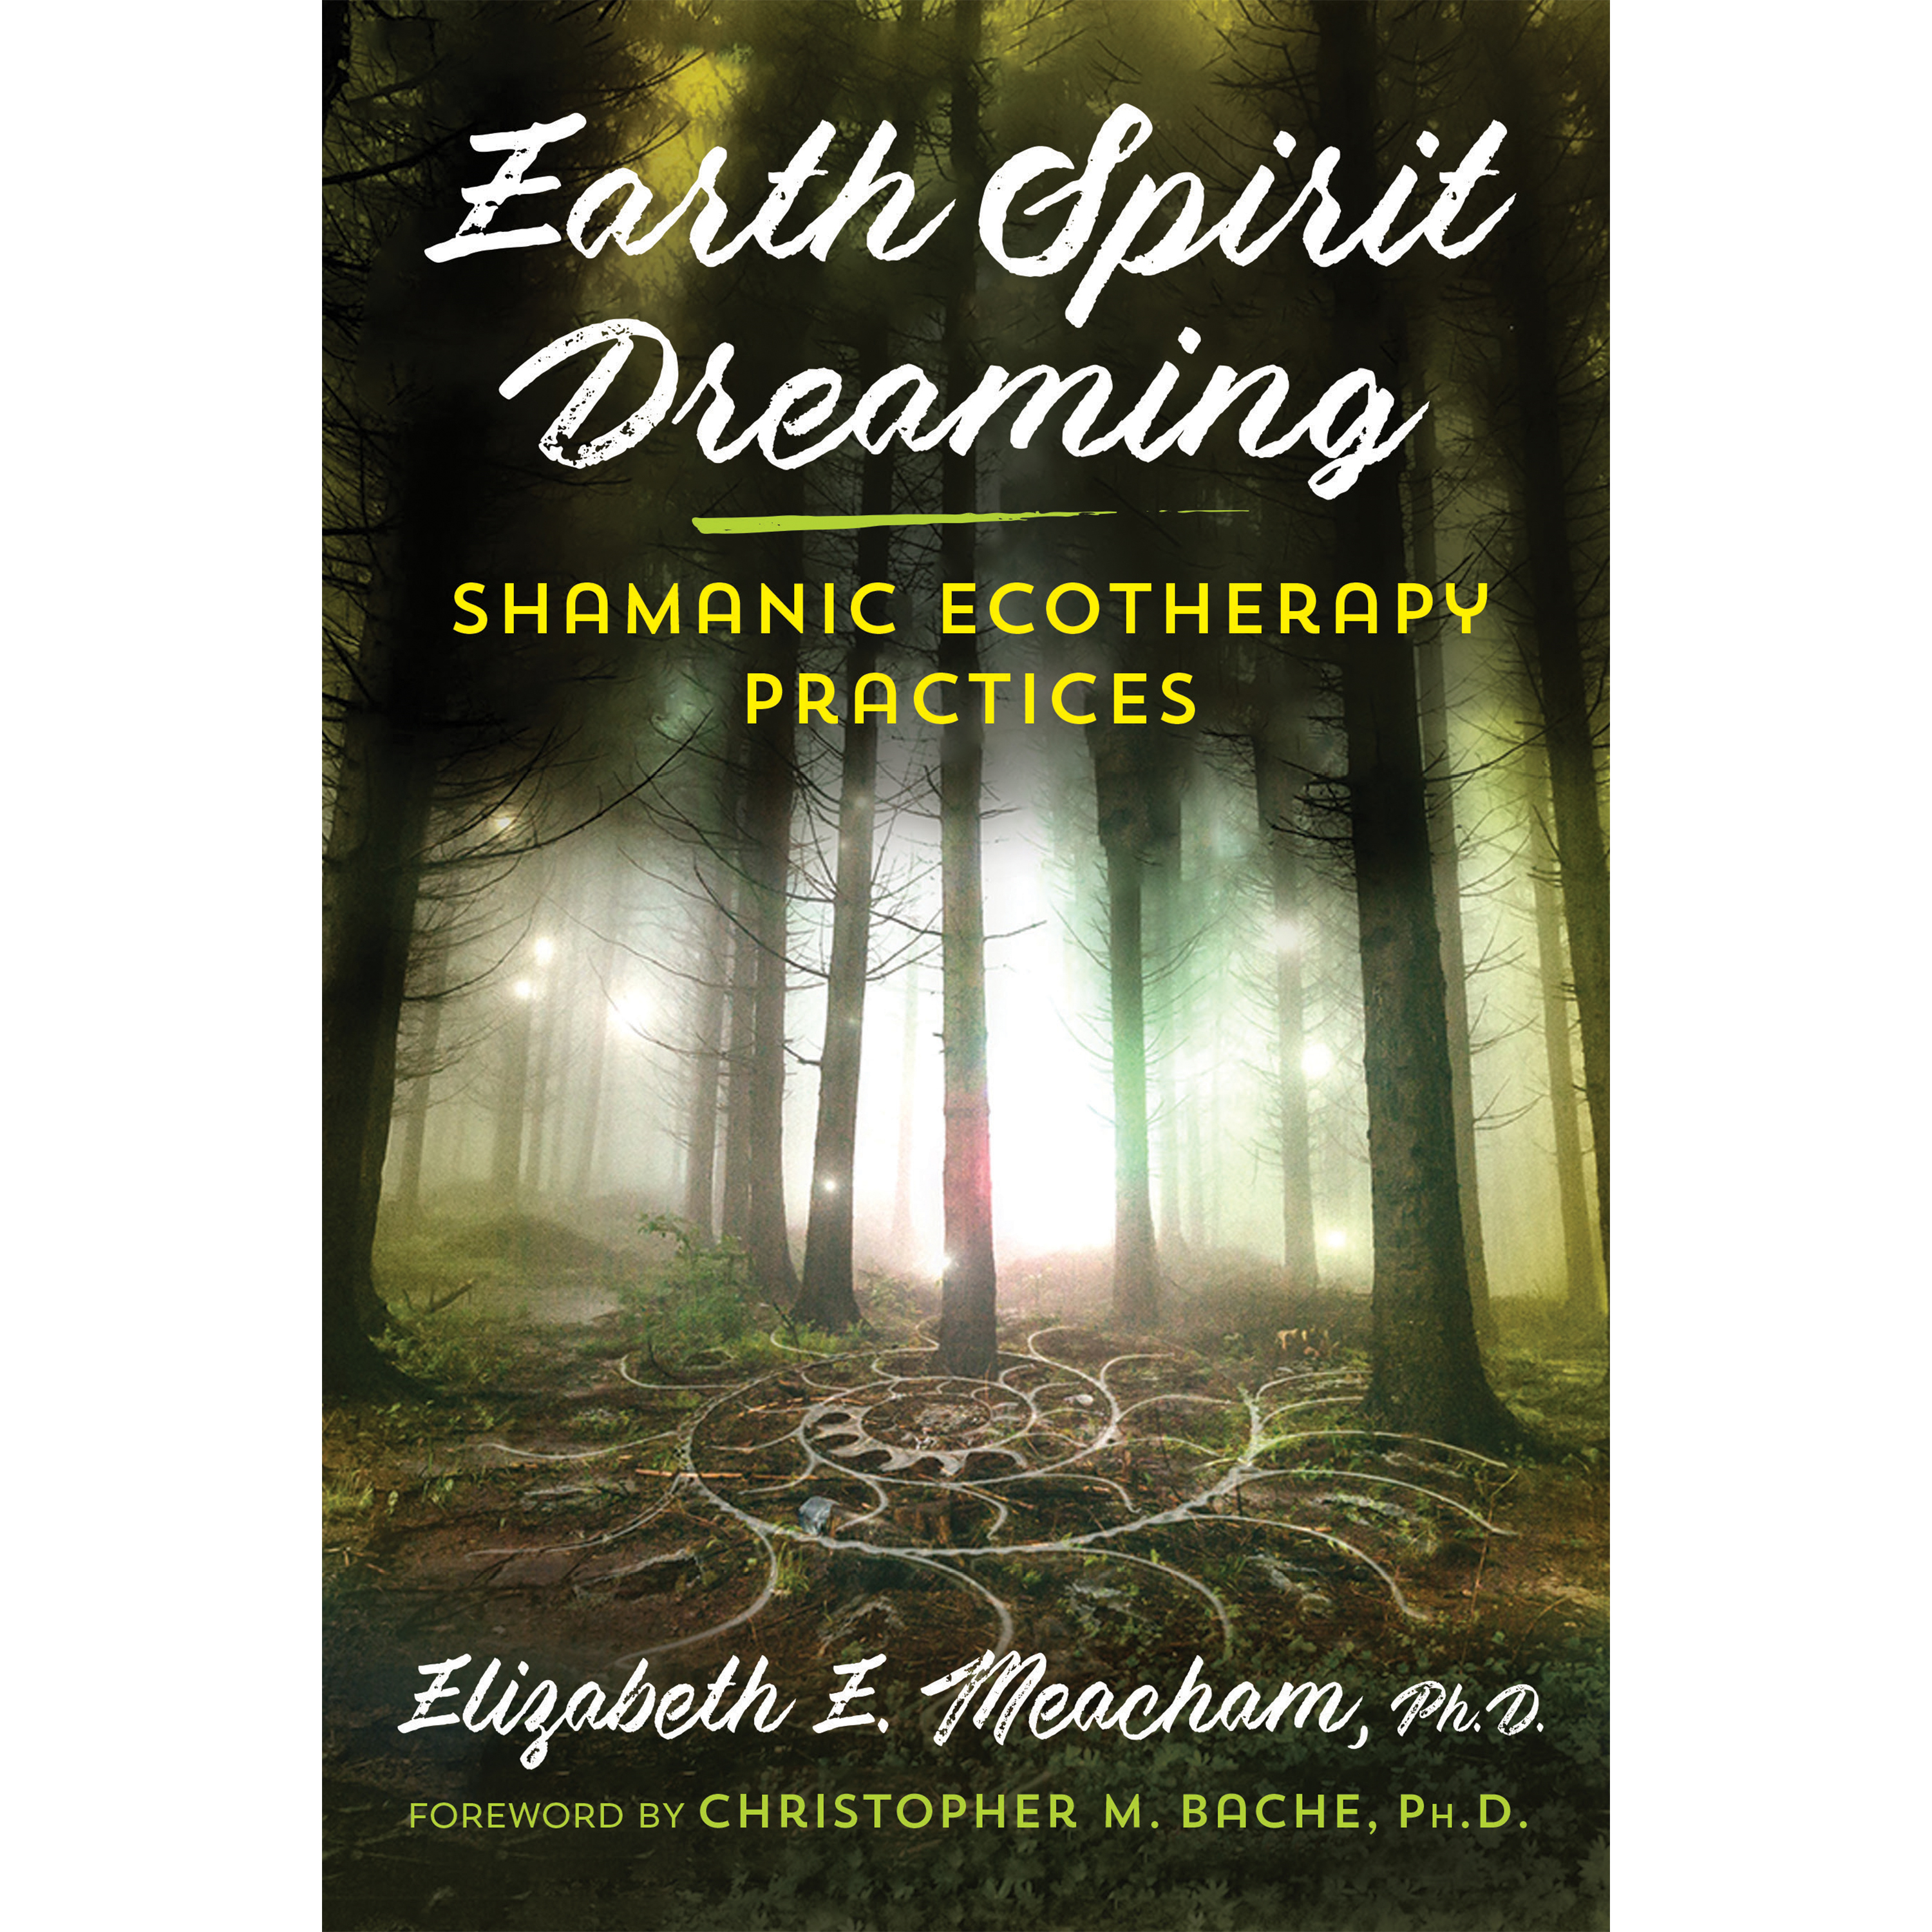 Earth Spirit Dreaming